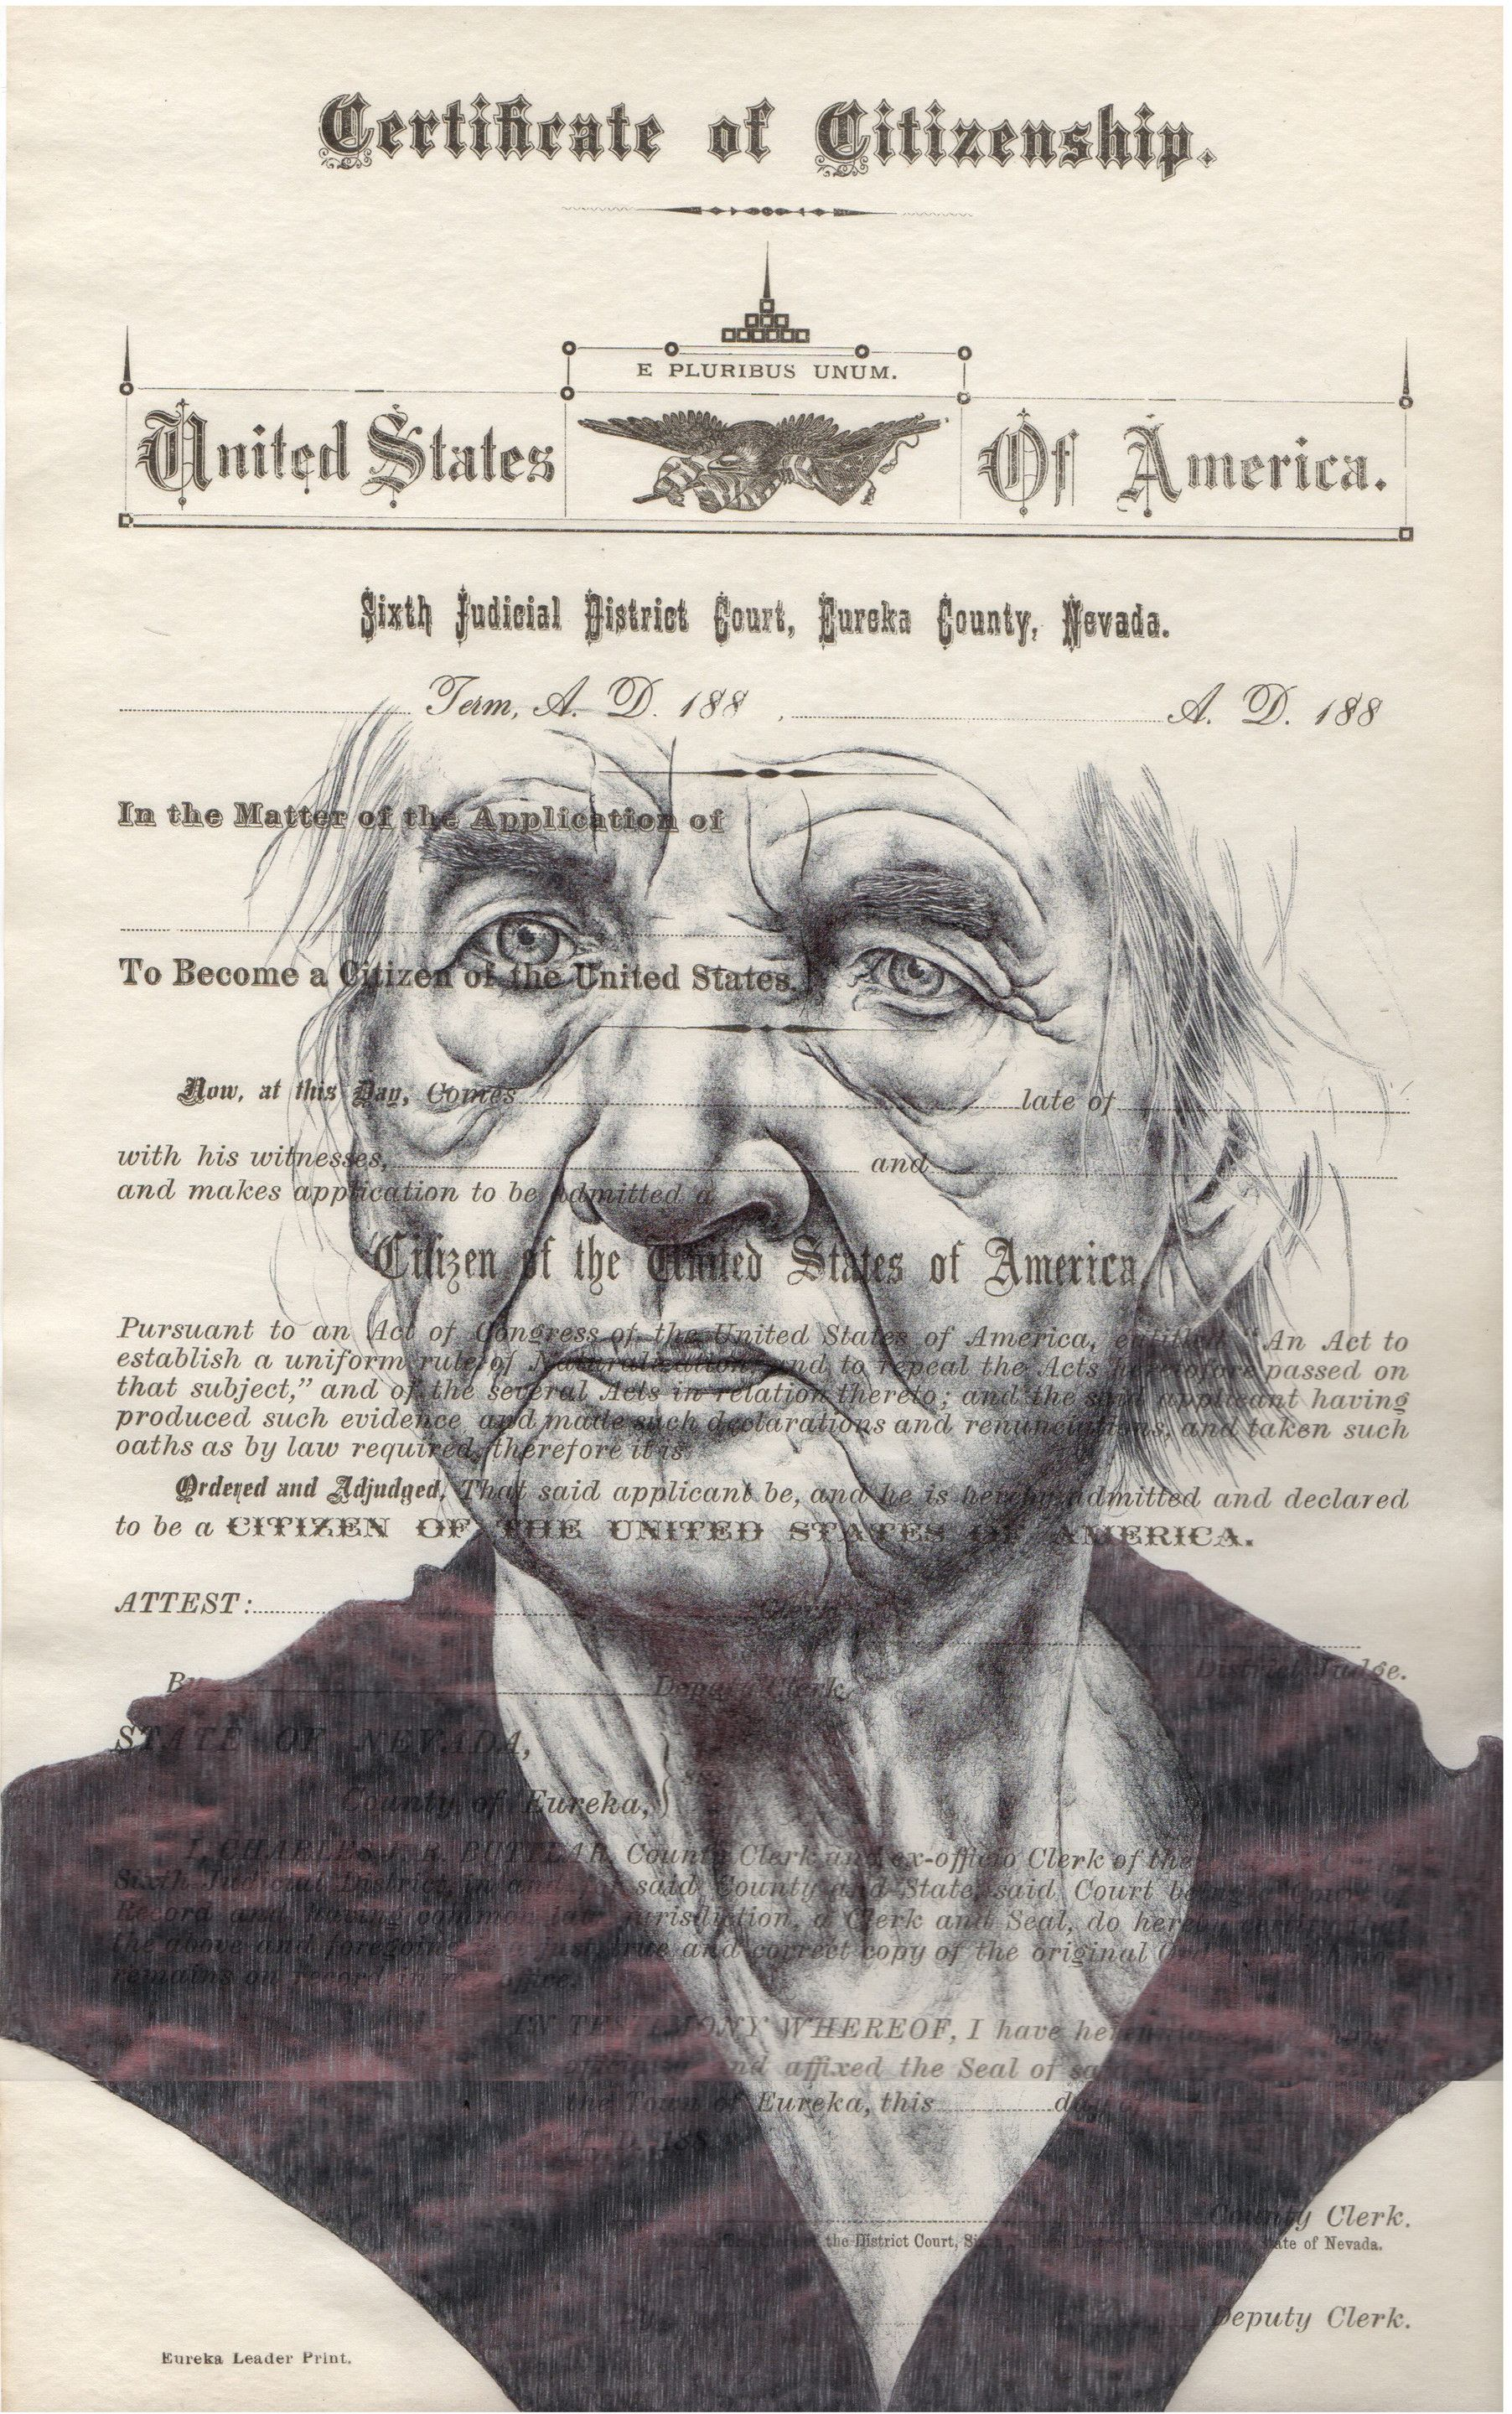 Bic Biro Drawing On S American Citizenship Form By Mark Powell